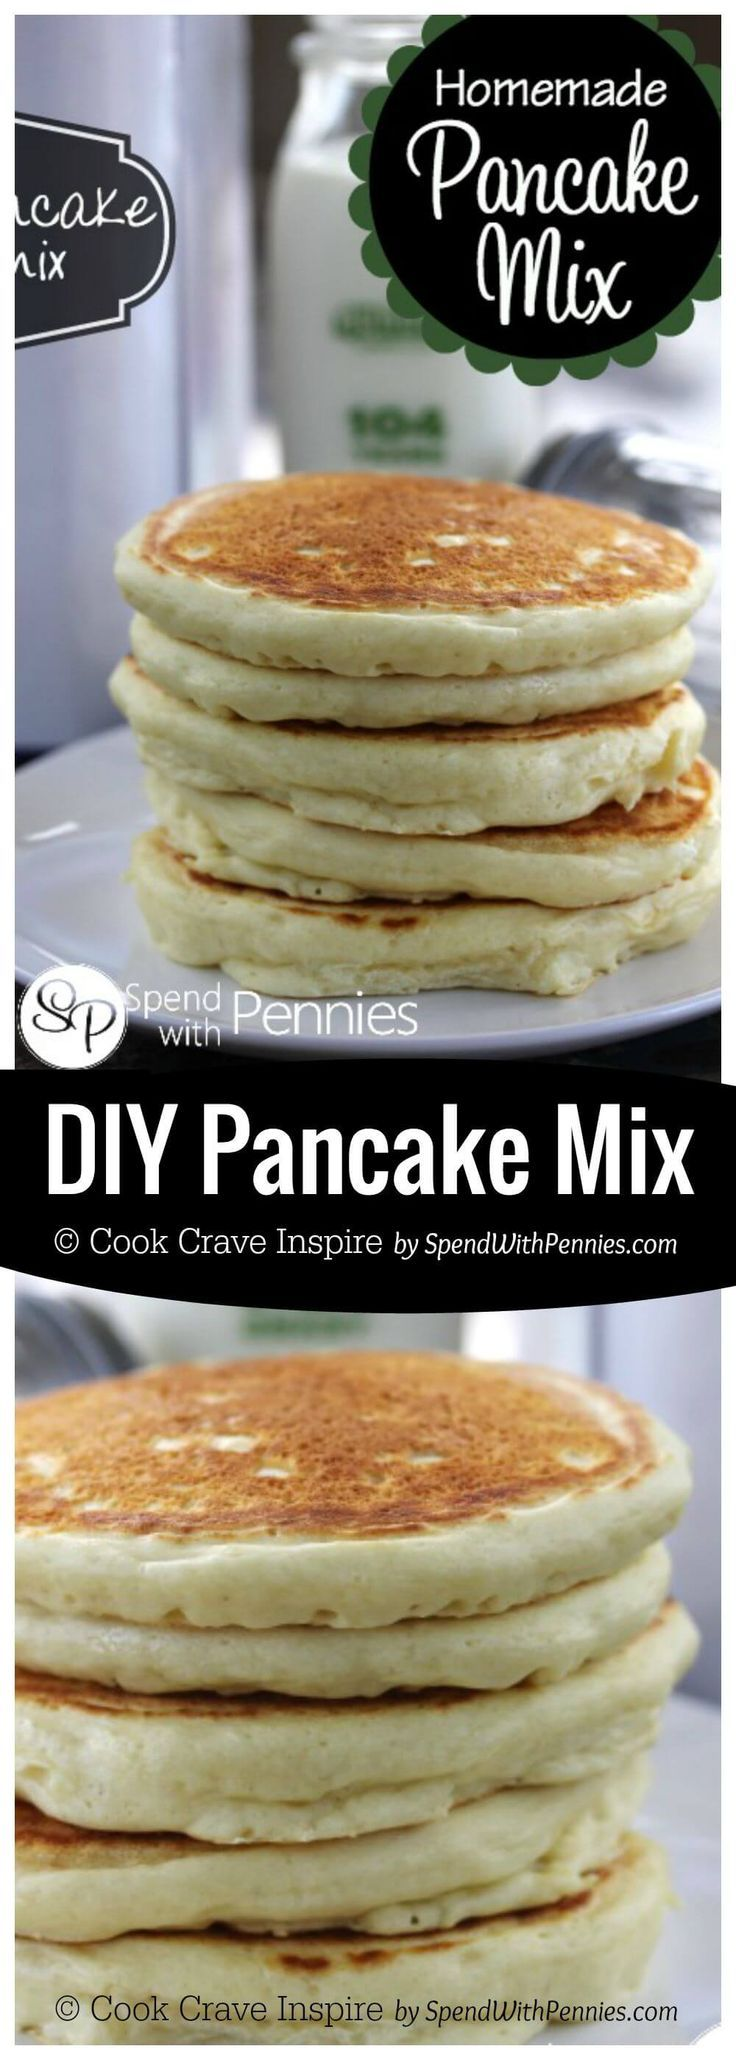 This DIY Pancake Mix Recipe is easy to make with ingredients you already have on hand, it keeps for months... and it makes the most delicious fluffy pancakes!